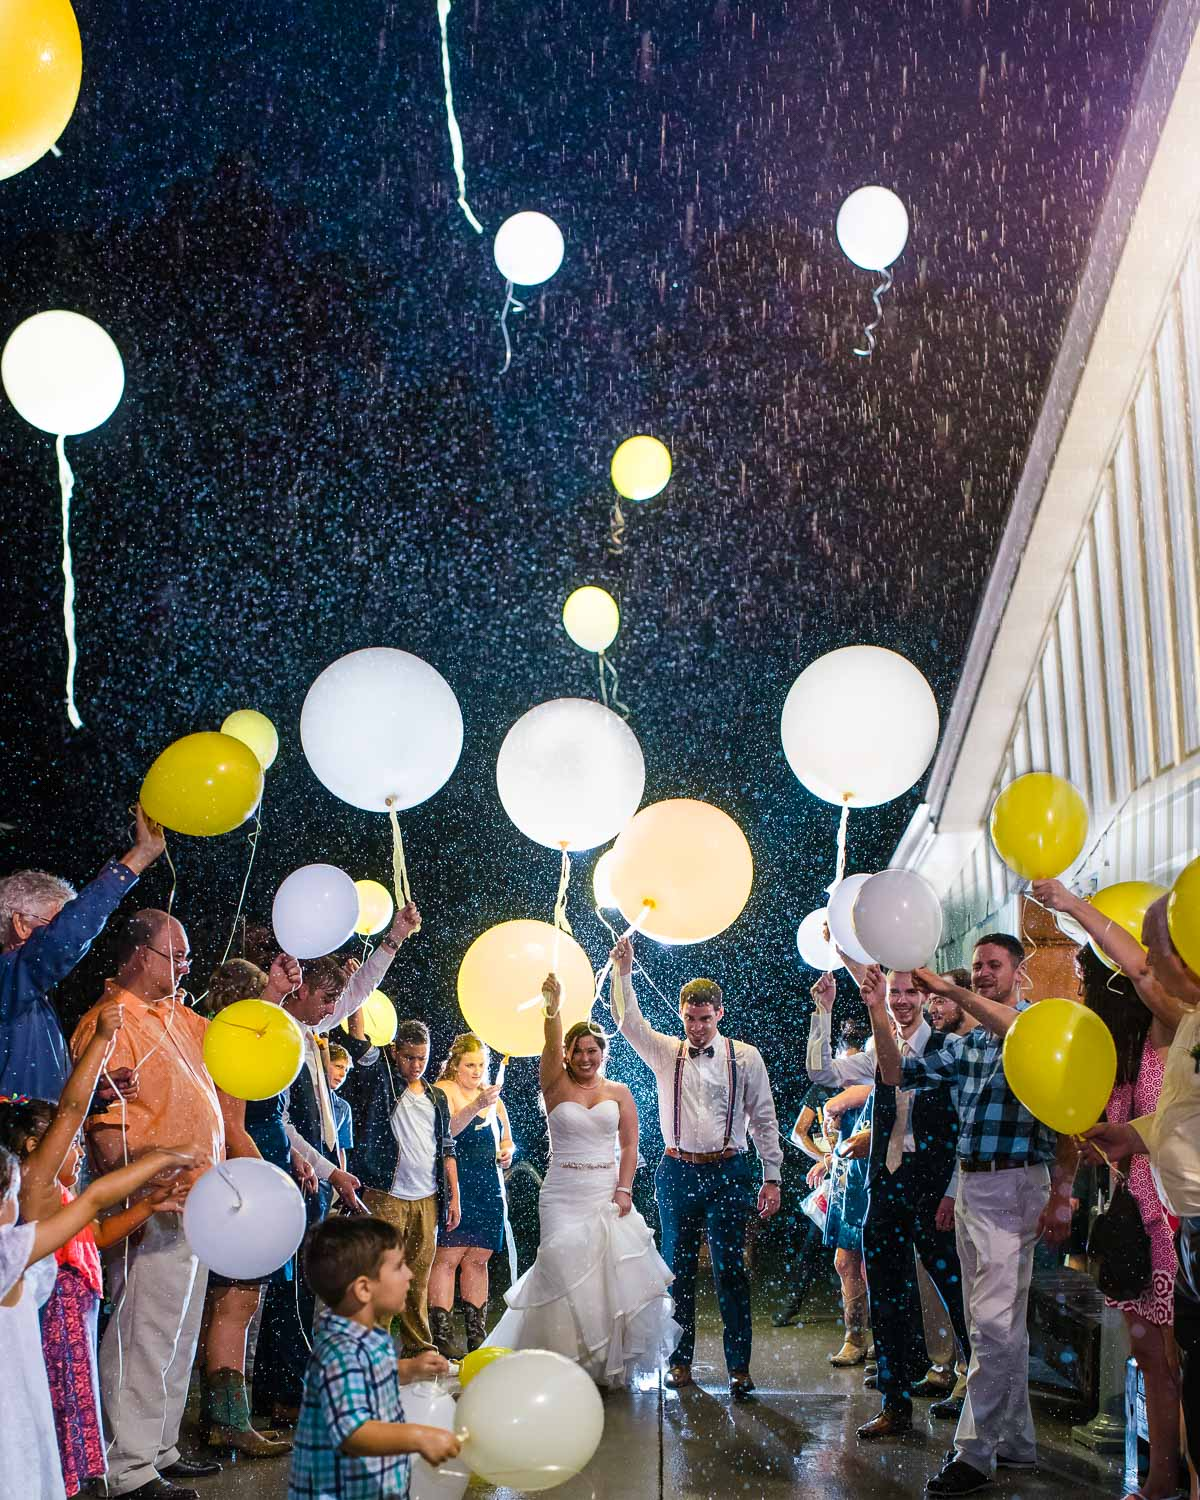 balloon wedding exit in the rain at night